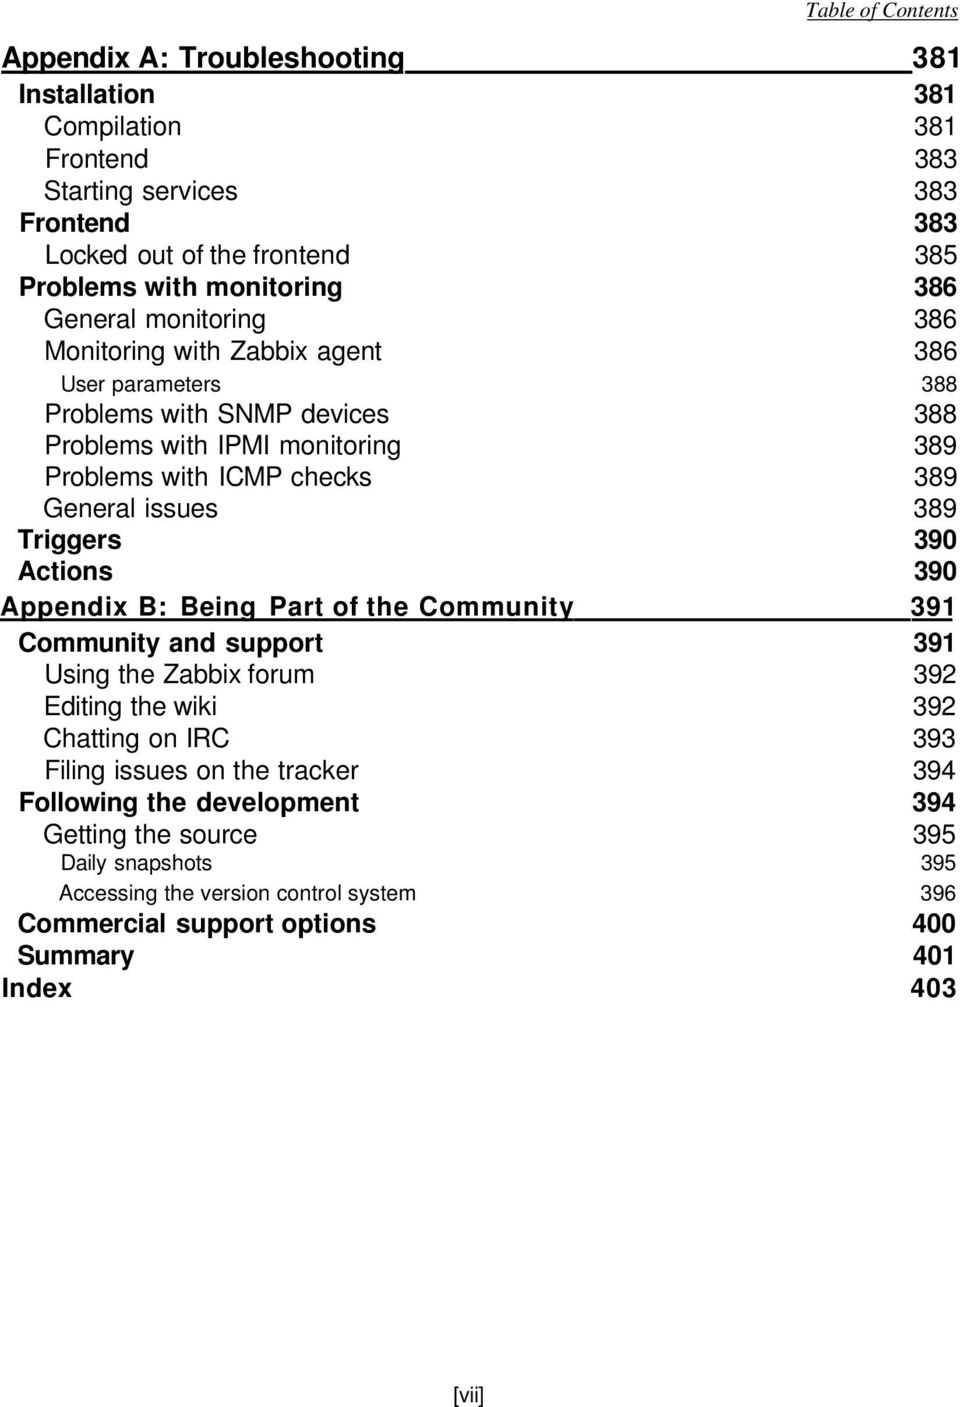 Triggers 390 Actions 390 Appendix B: Being Part of the Community 391 Community and support 391 Using the Zabbix forum 392 Editing the wiki 392 Chatting on IRC 393 Filing issues on